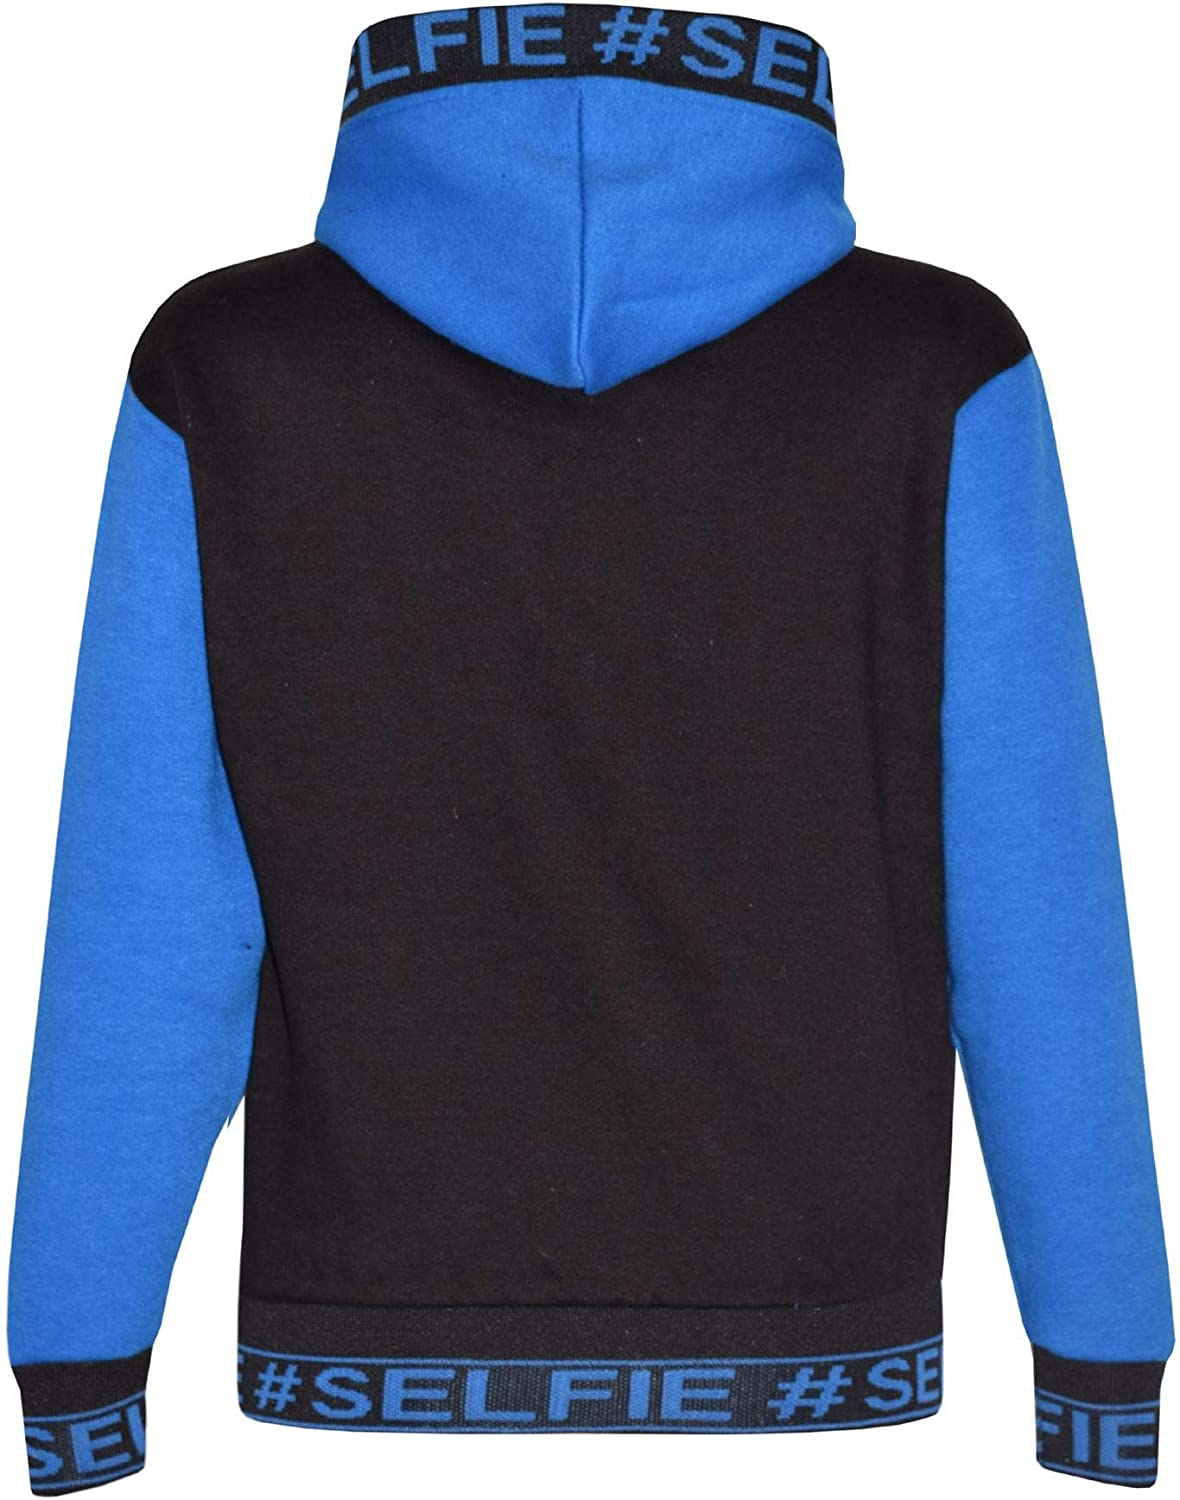 A2Z 4 Kids/® Kids Girls Boys Tracksuit Designers Blue #Selfie Embroidered Zipped Top Hoodie /& Botom Jogging Suit Joggers Age 5 6 7 8 9 10 11 12 13 Years